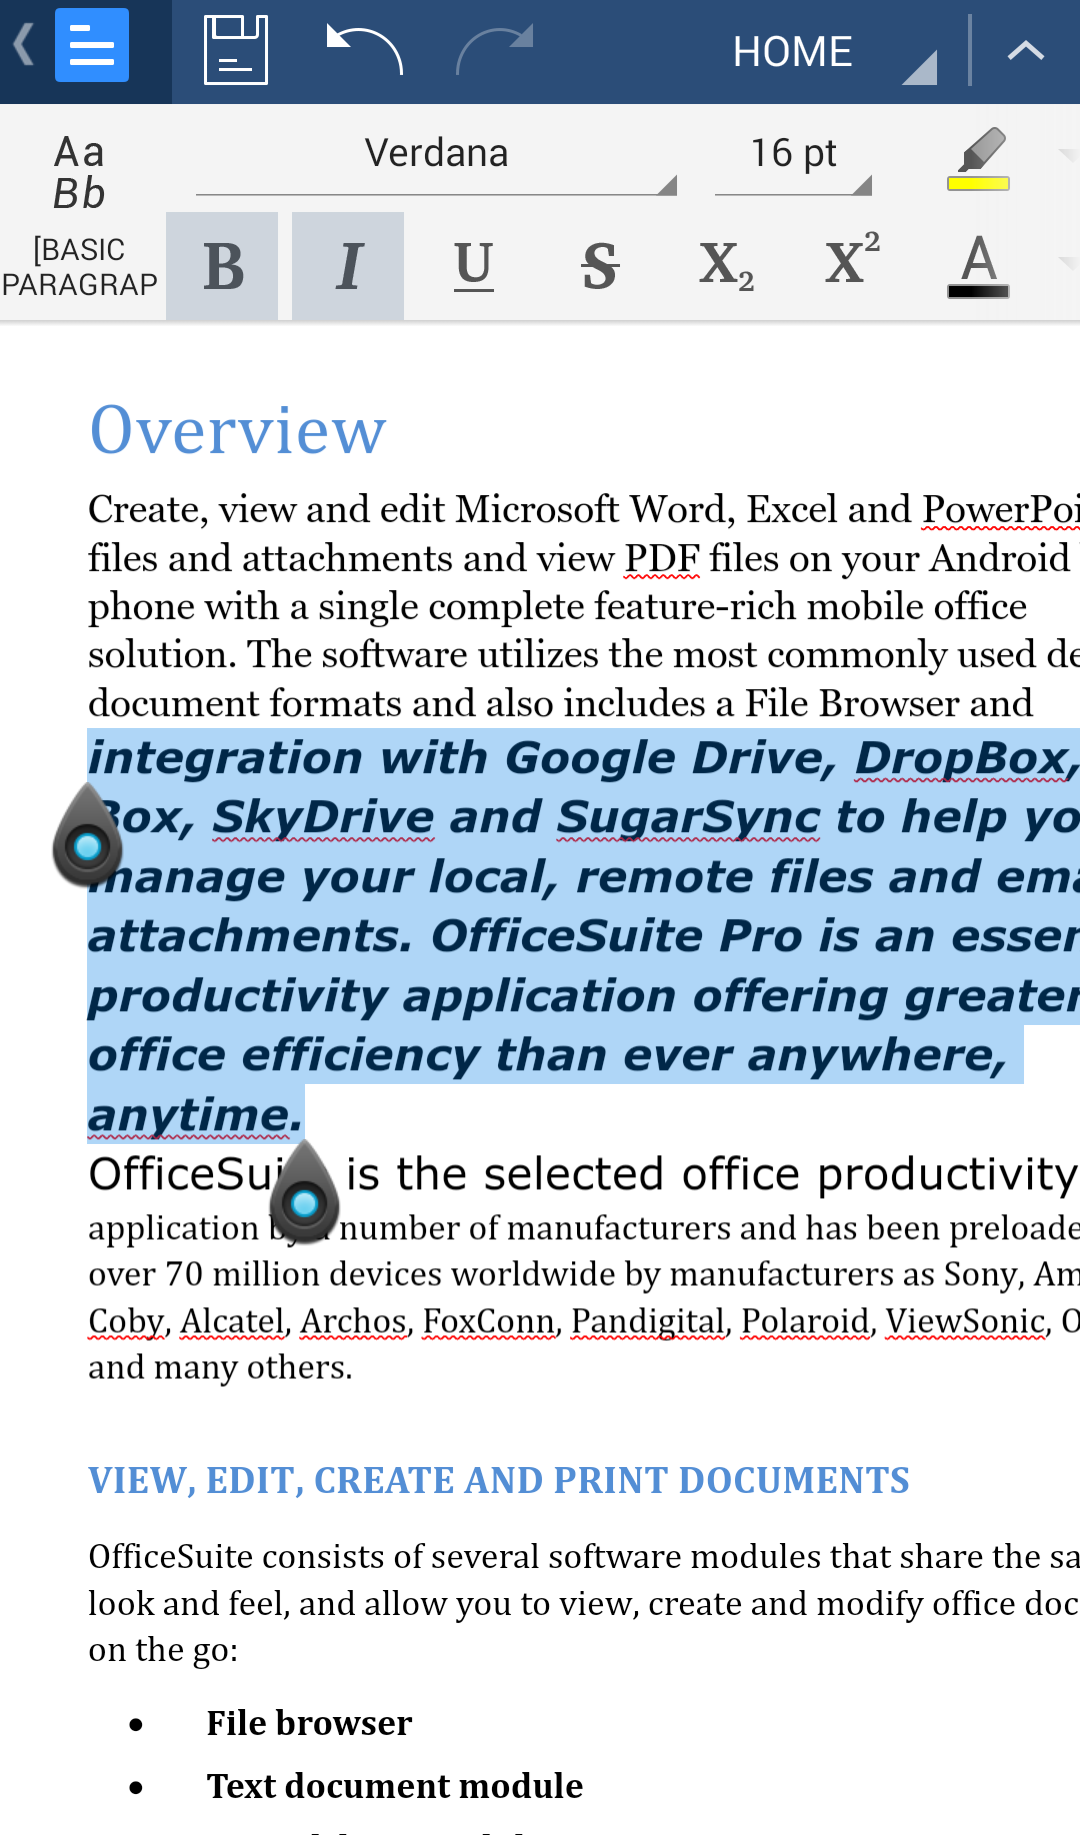 Download OfficeSuite Font Pack (Android) reviews at Android Quality ...